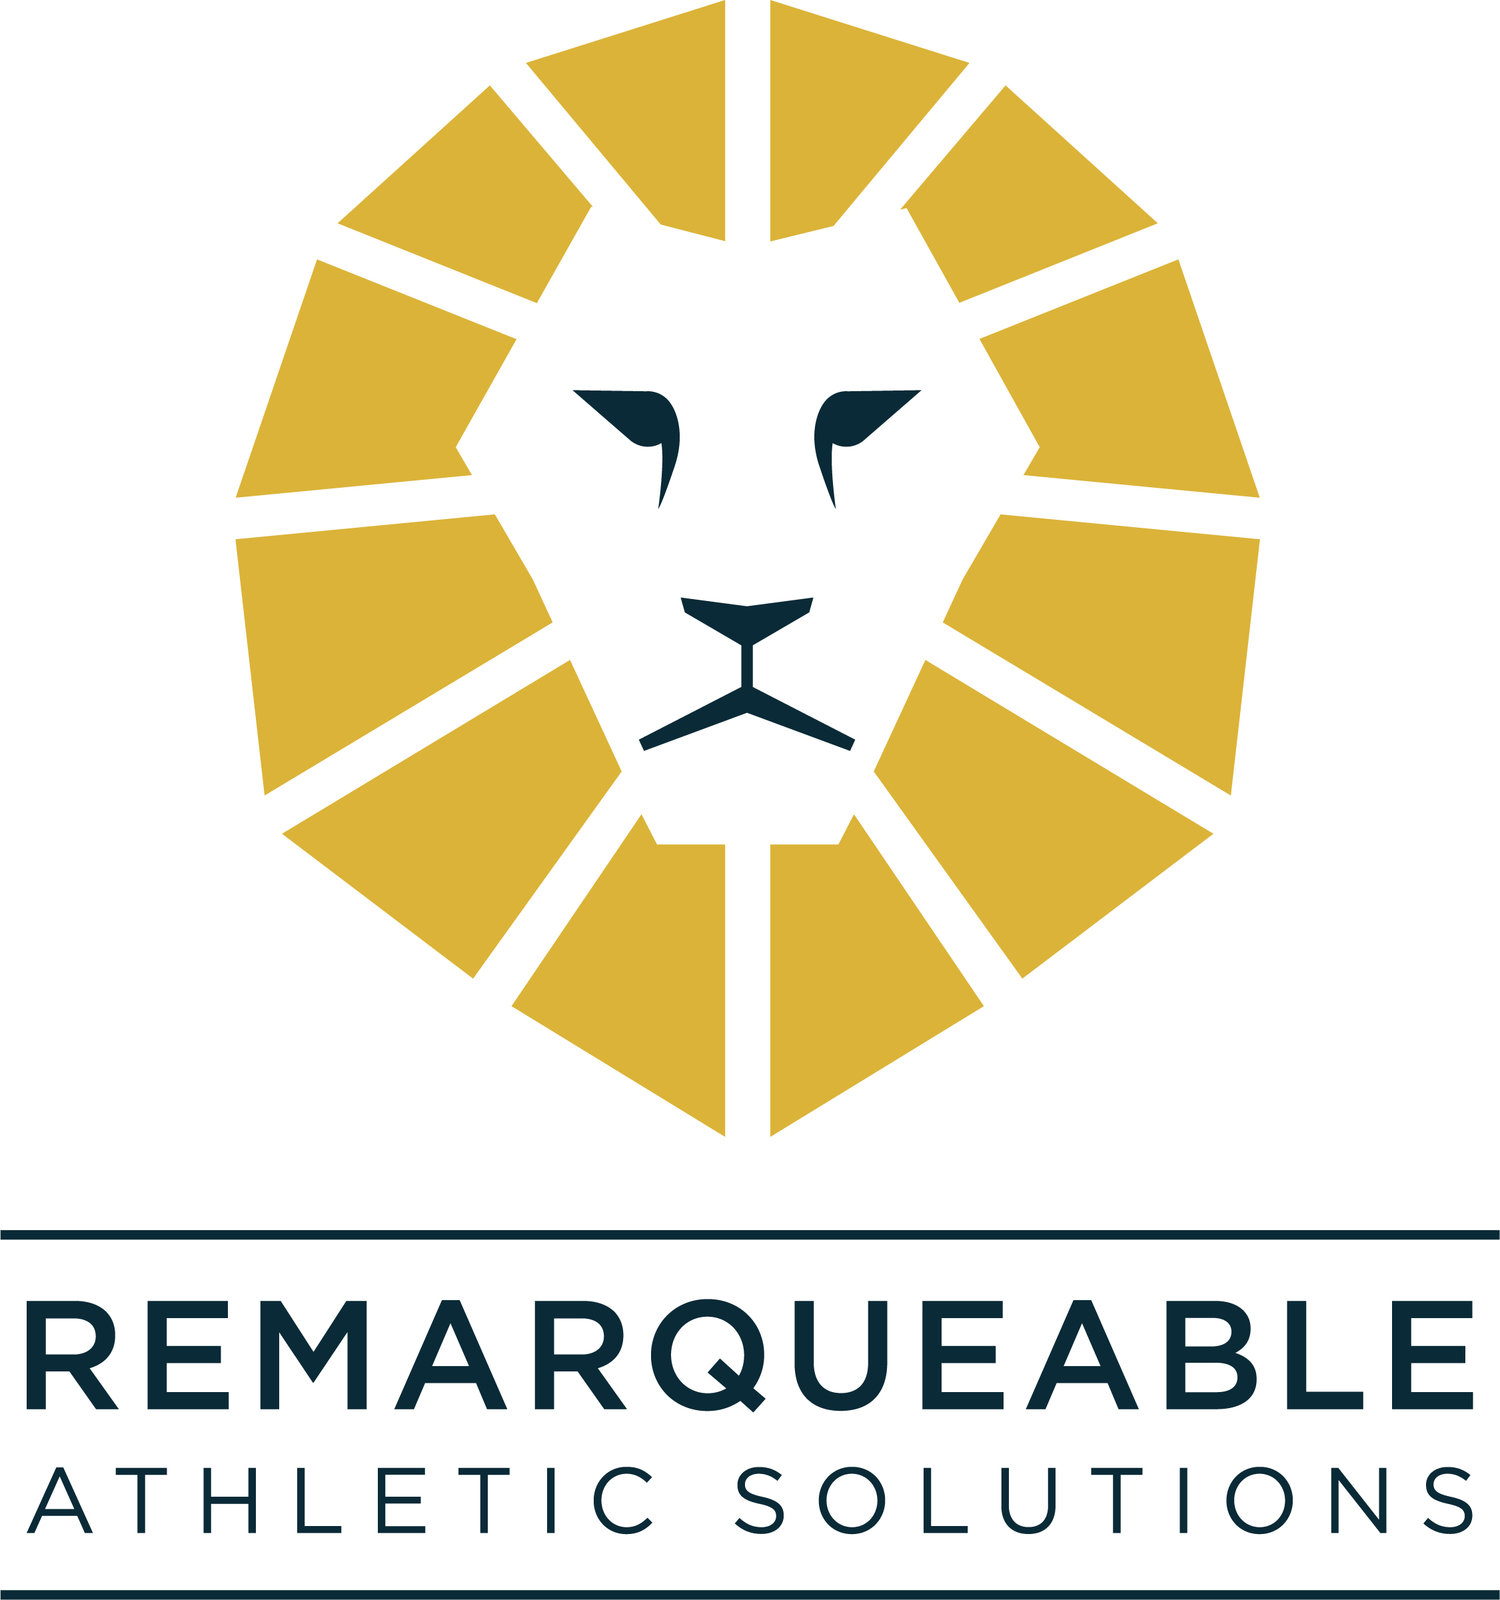 Remarqueable Athletic Solutions